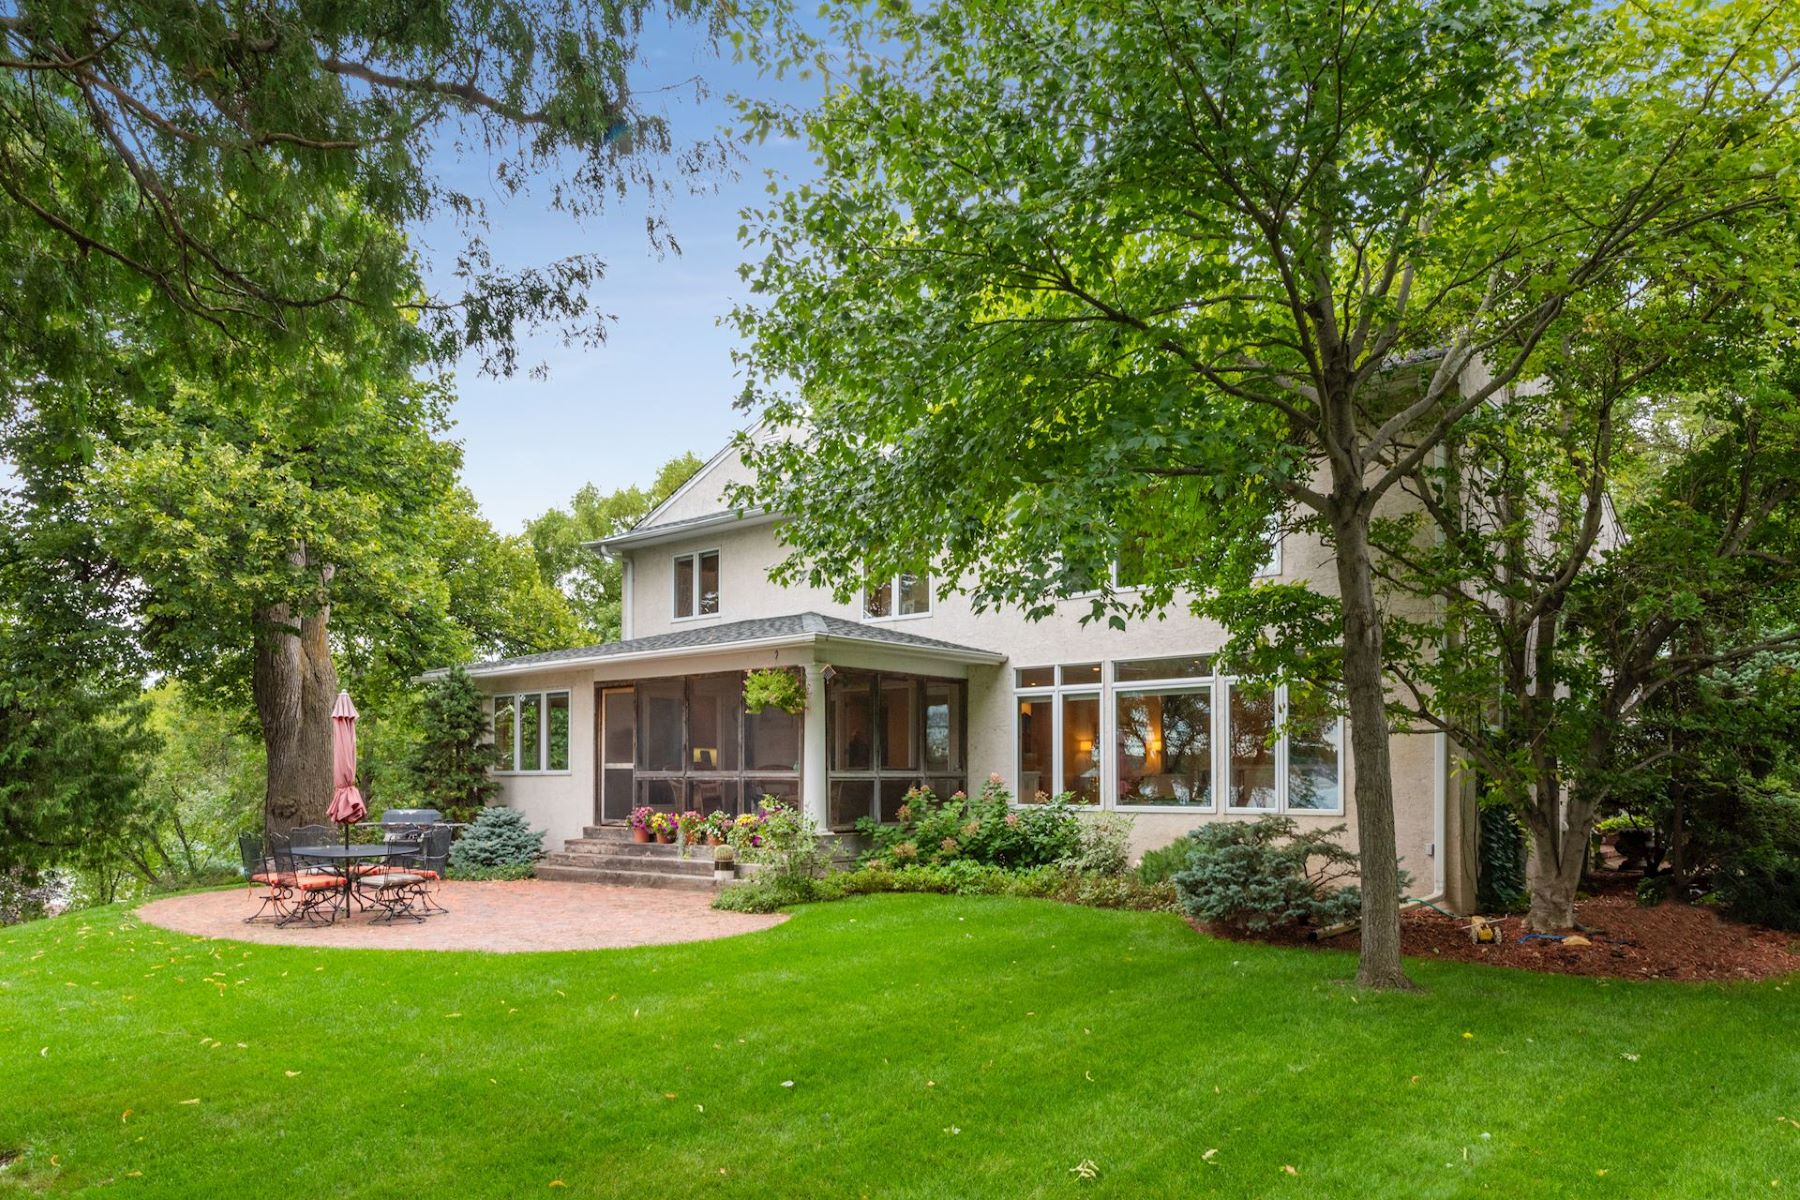 Single Family Homes for Sale at Unsurpassed Privacy on Hard to Find Acreage in Orono 4423 North Shore Drive Orono, Minnesota 55364 United States